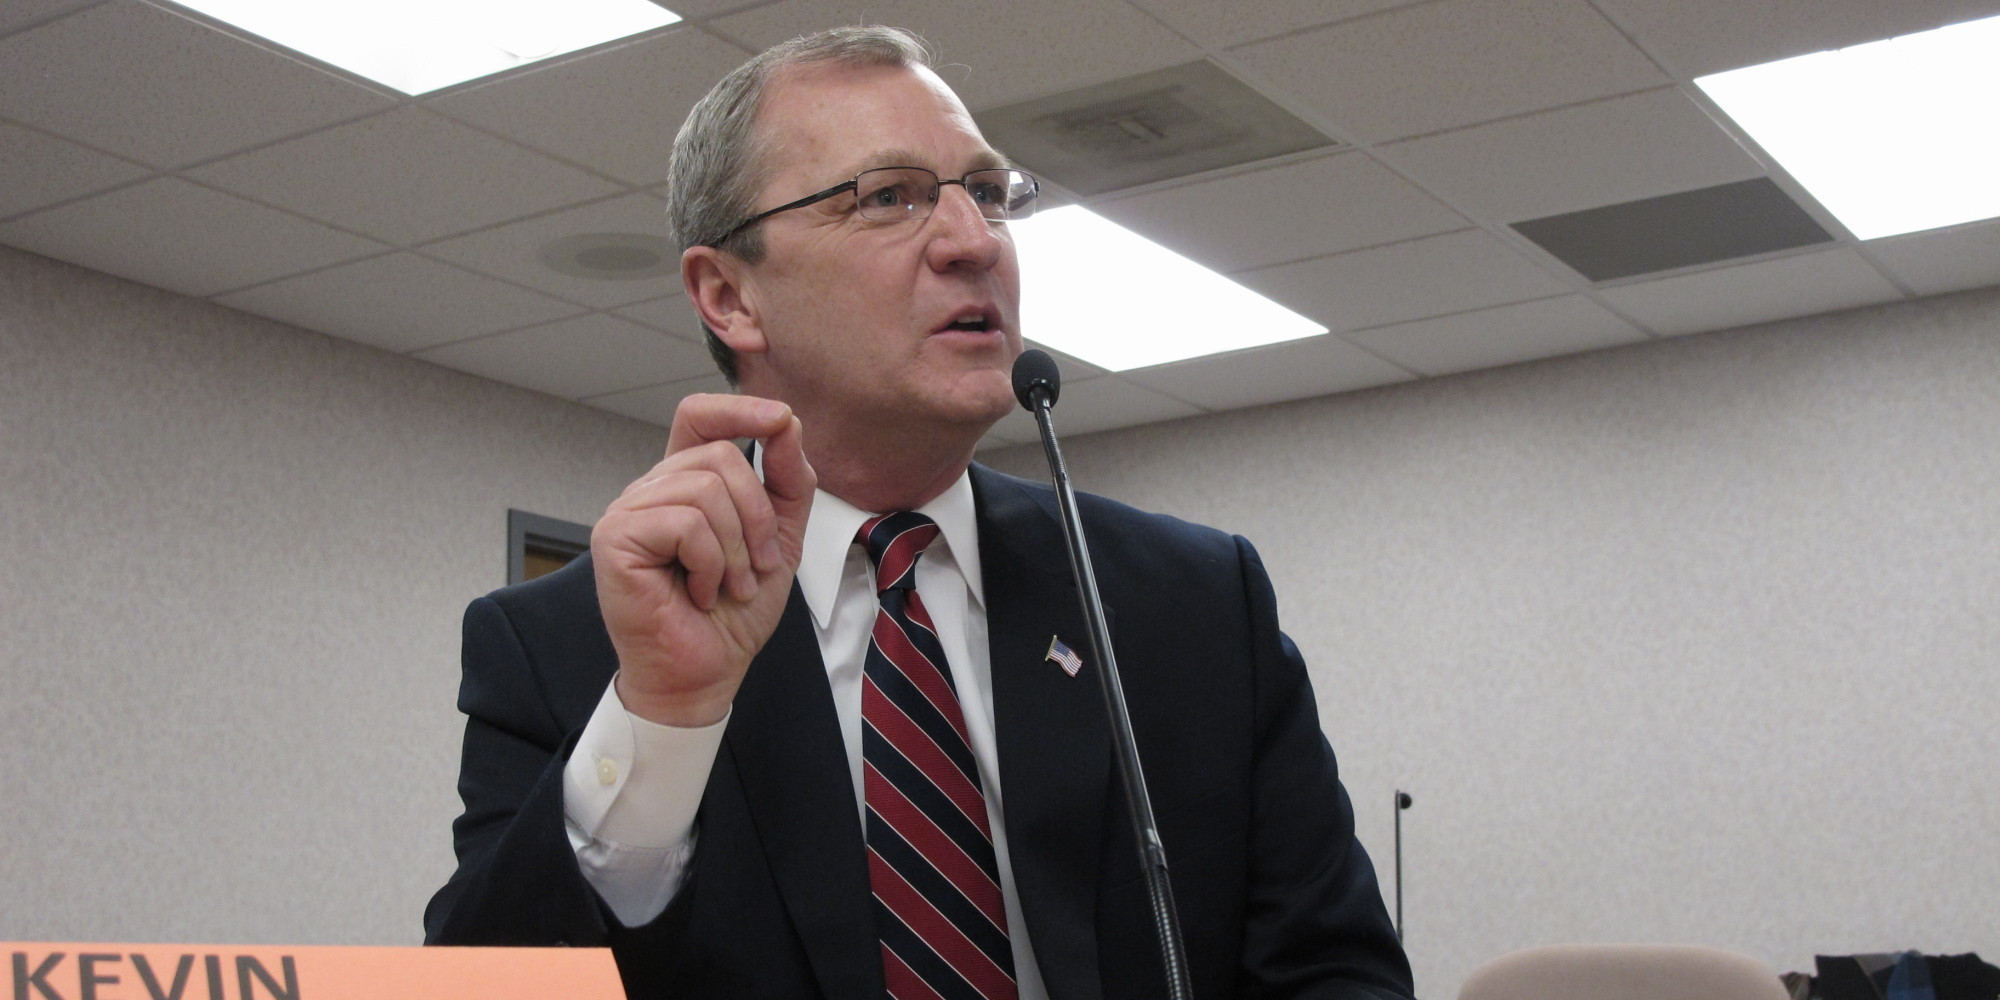 U.S. Rep. Kevin Cramer (R-ND)